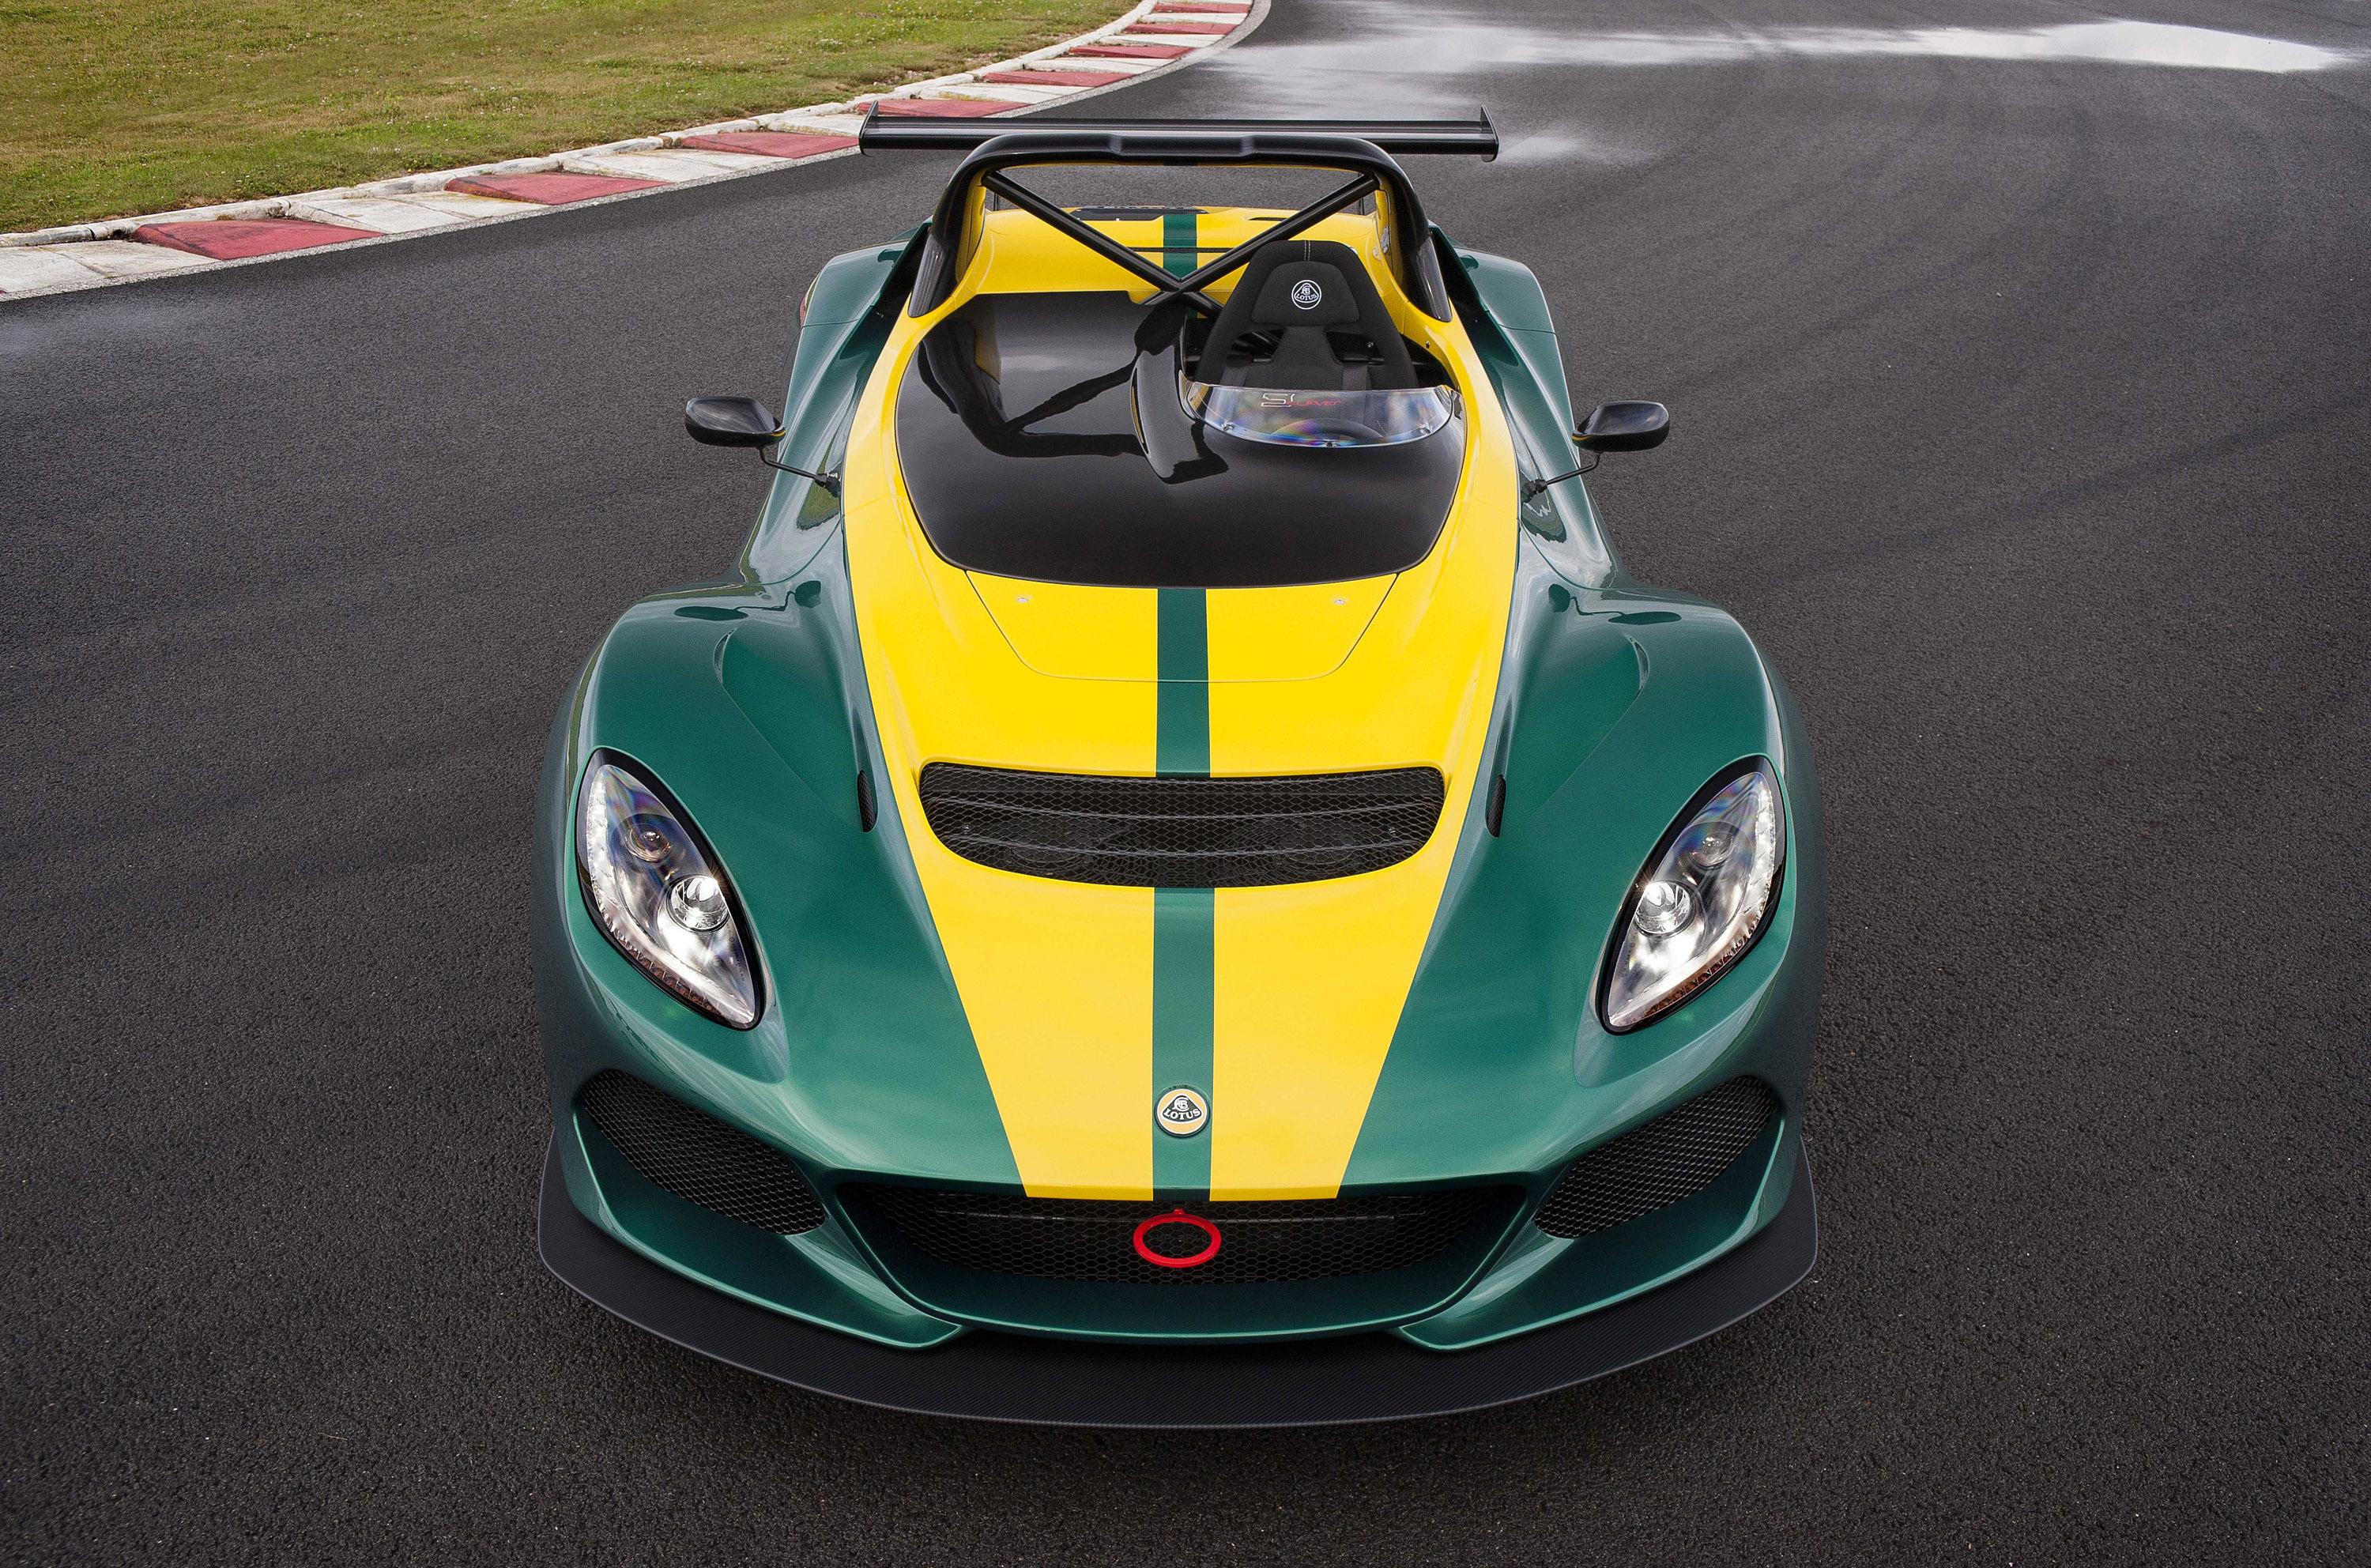 Lotus 3 Eleven Has A Lot To Offer With Interesting